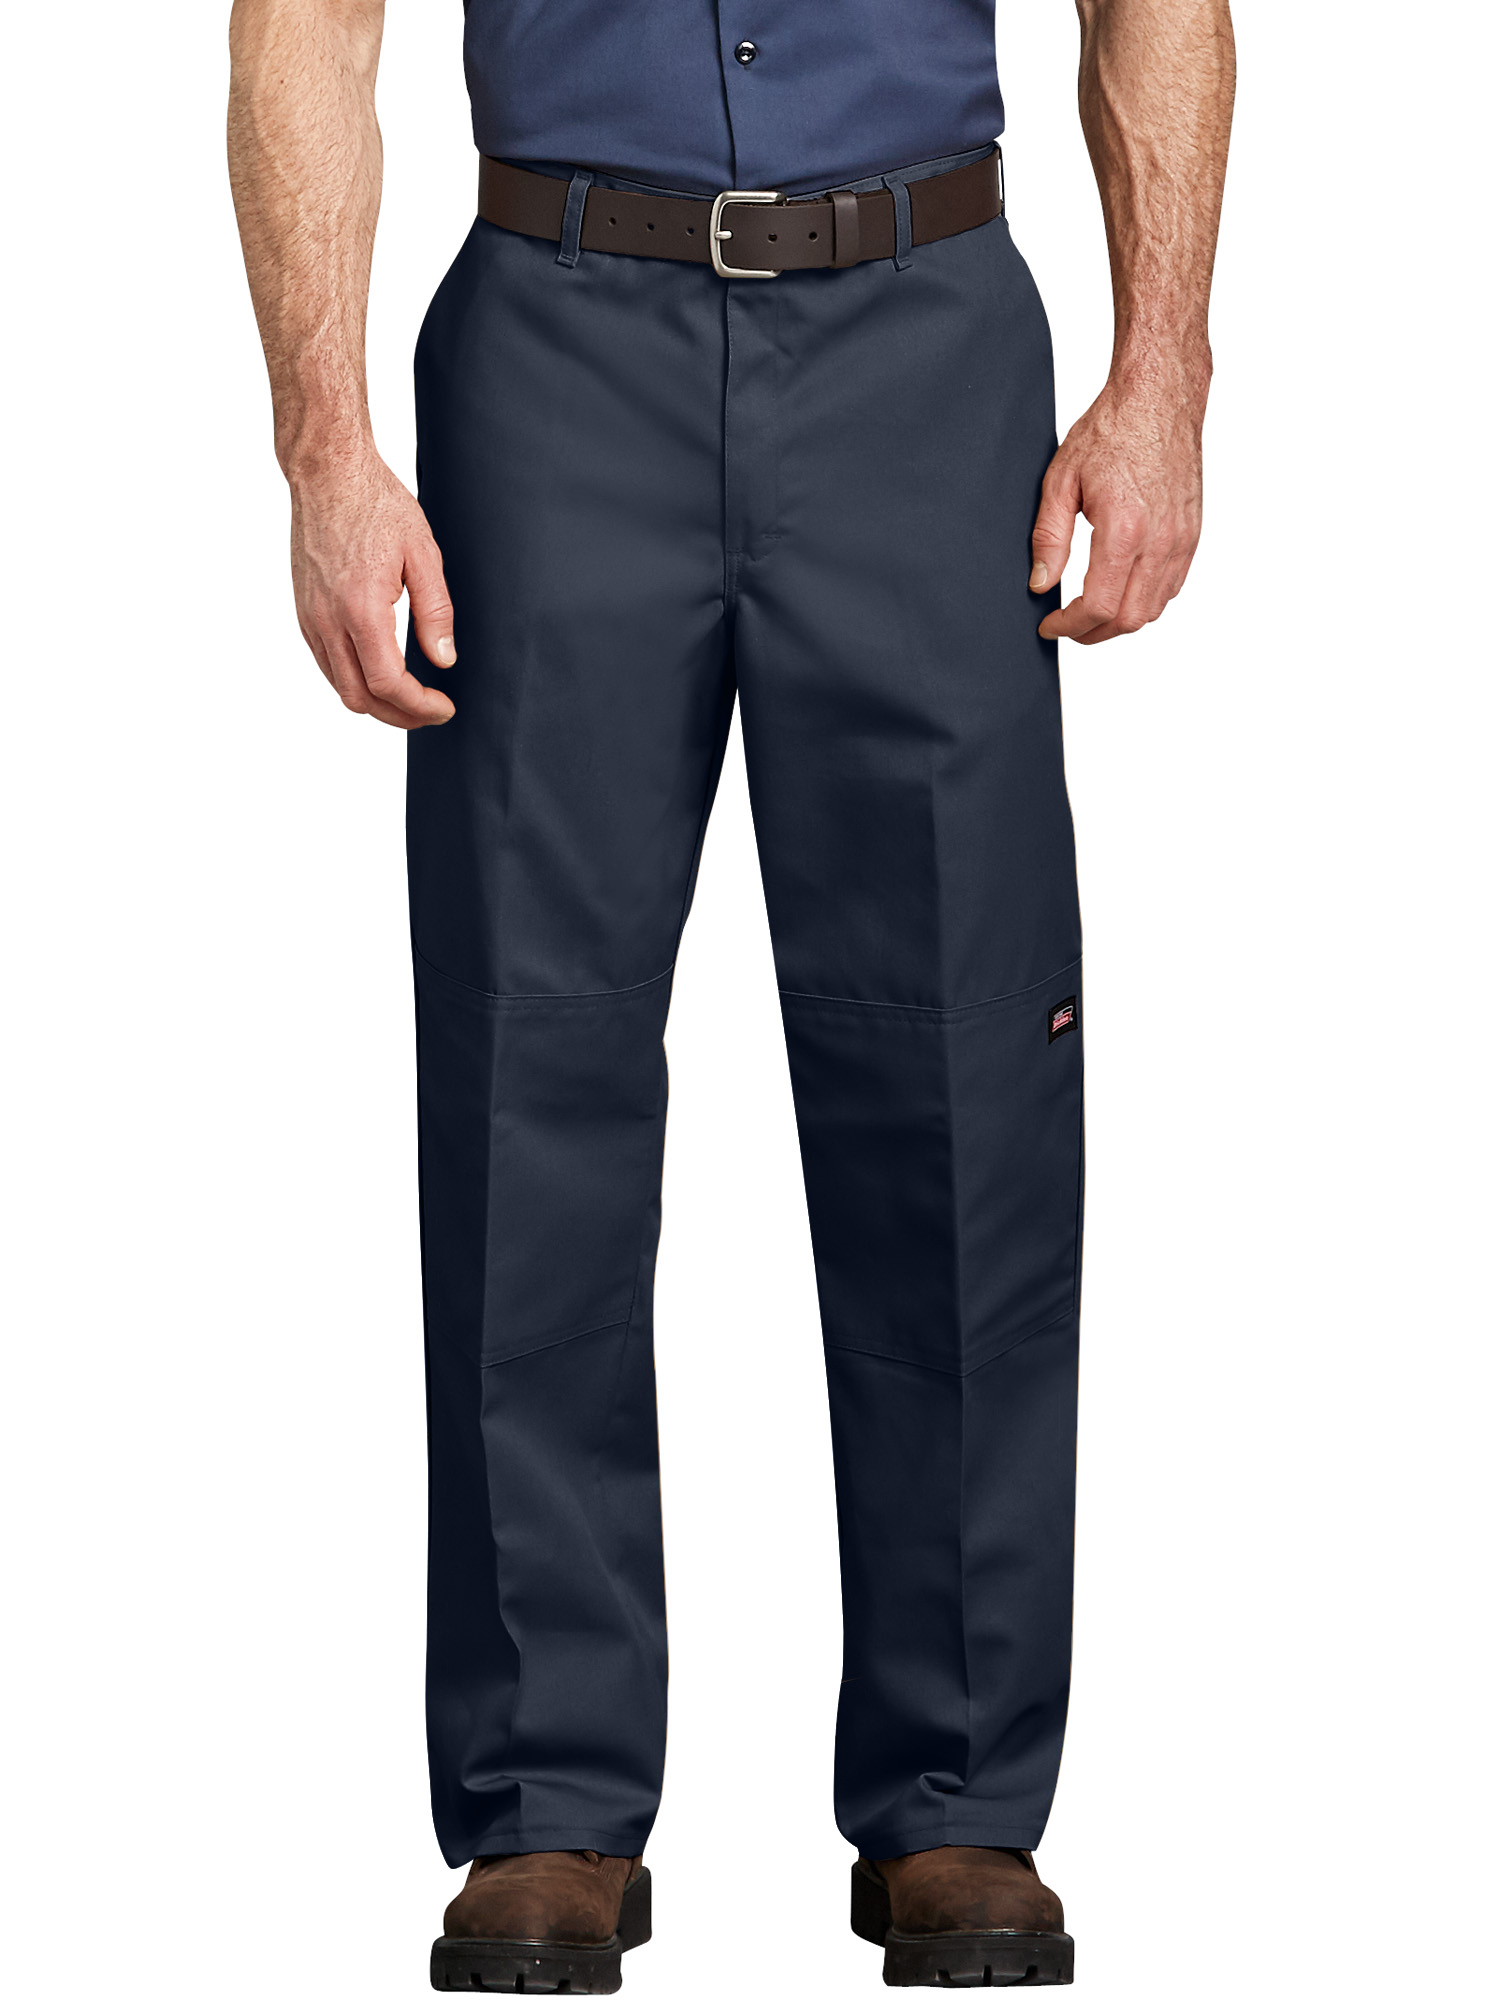 Men's Loose Fit Straight Leg Double-Knee Work Pants